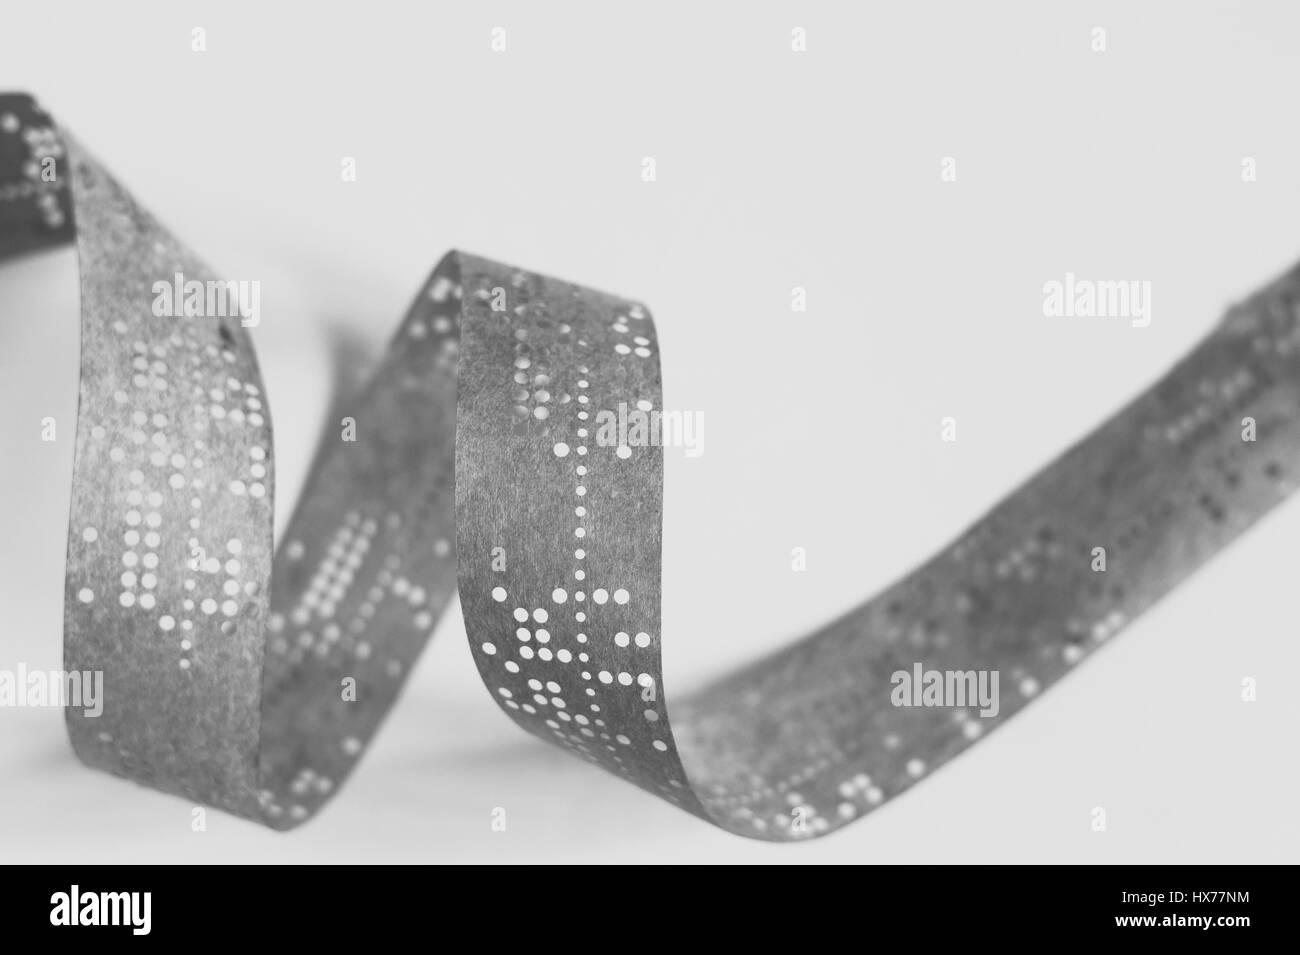 Strips of old punched tape on white surface - Stock Image